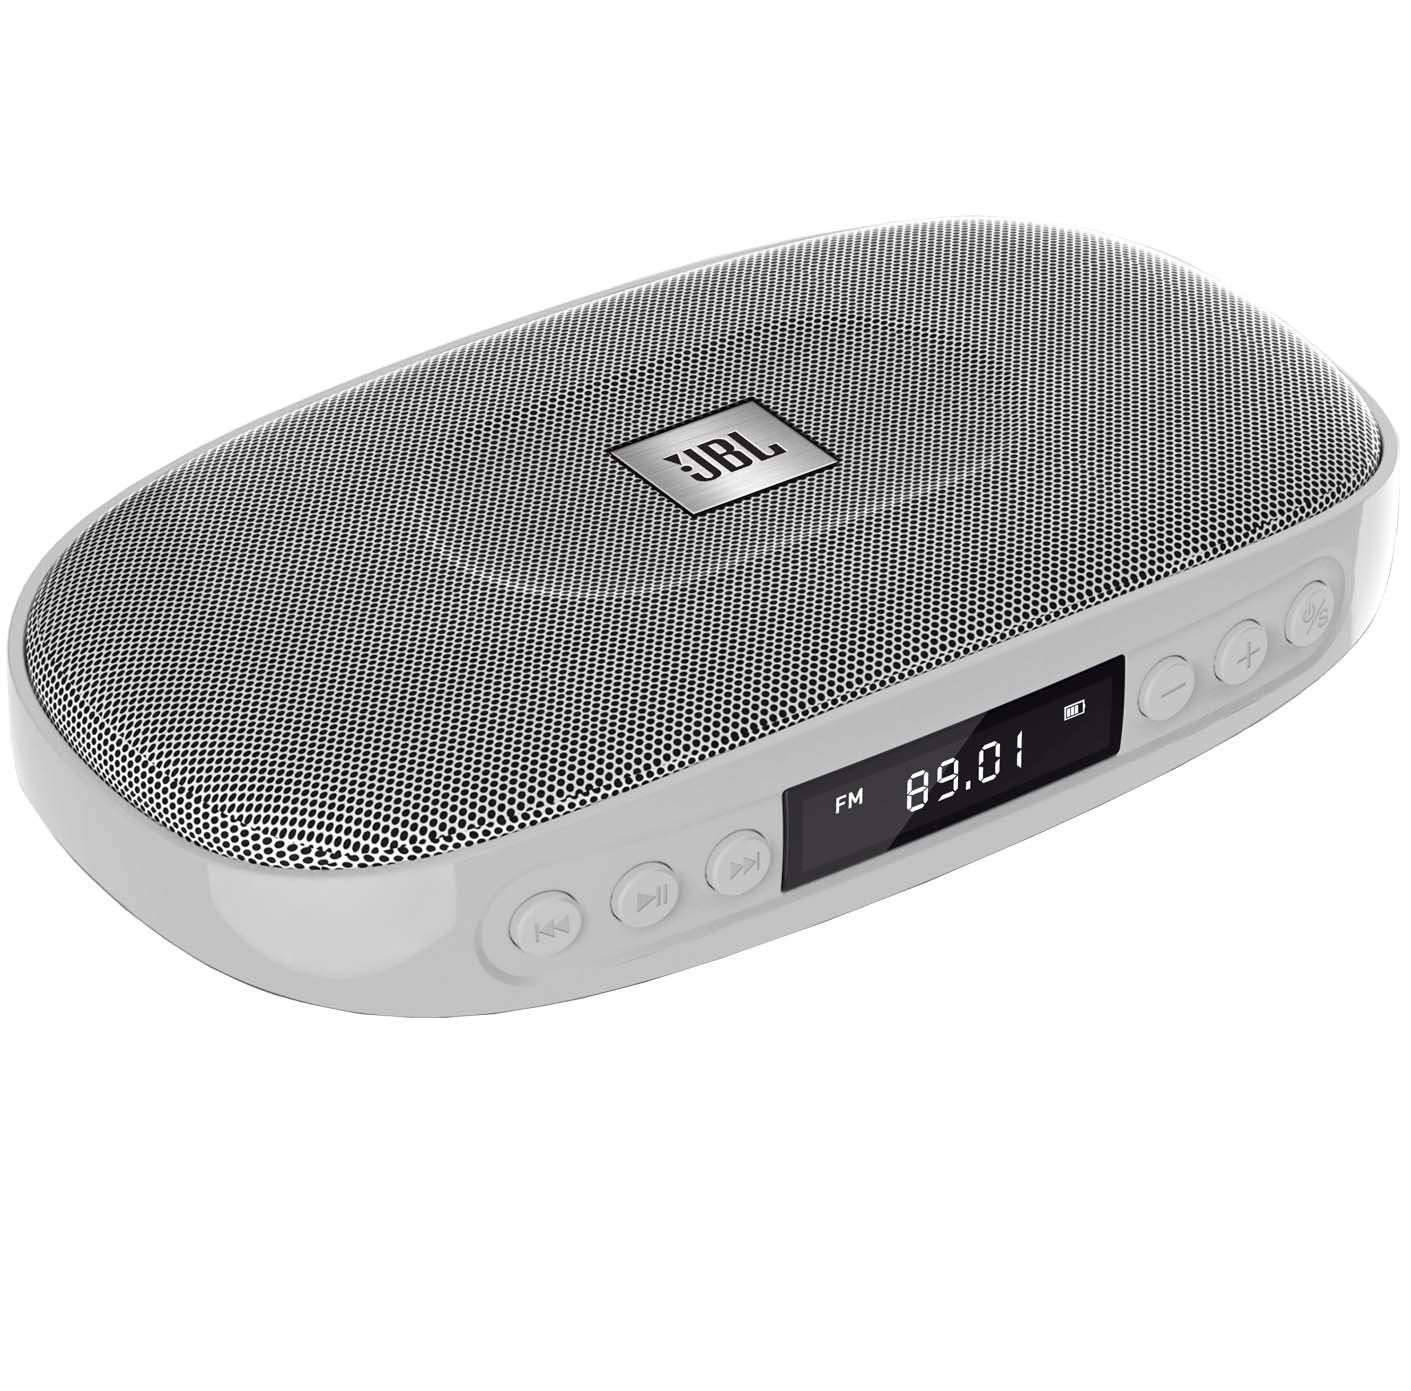 JBL Tune Wireless Bluetooth Speaker with SD Card Amazon Electronics